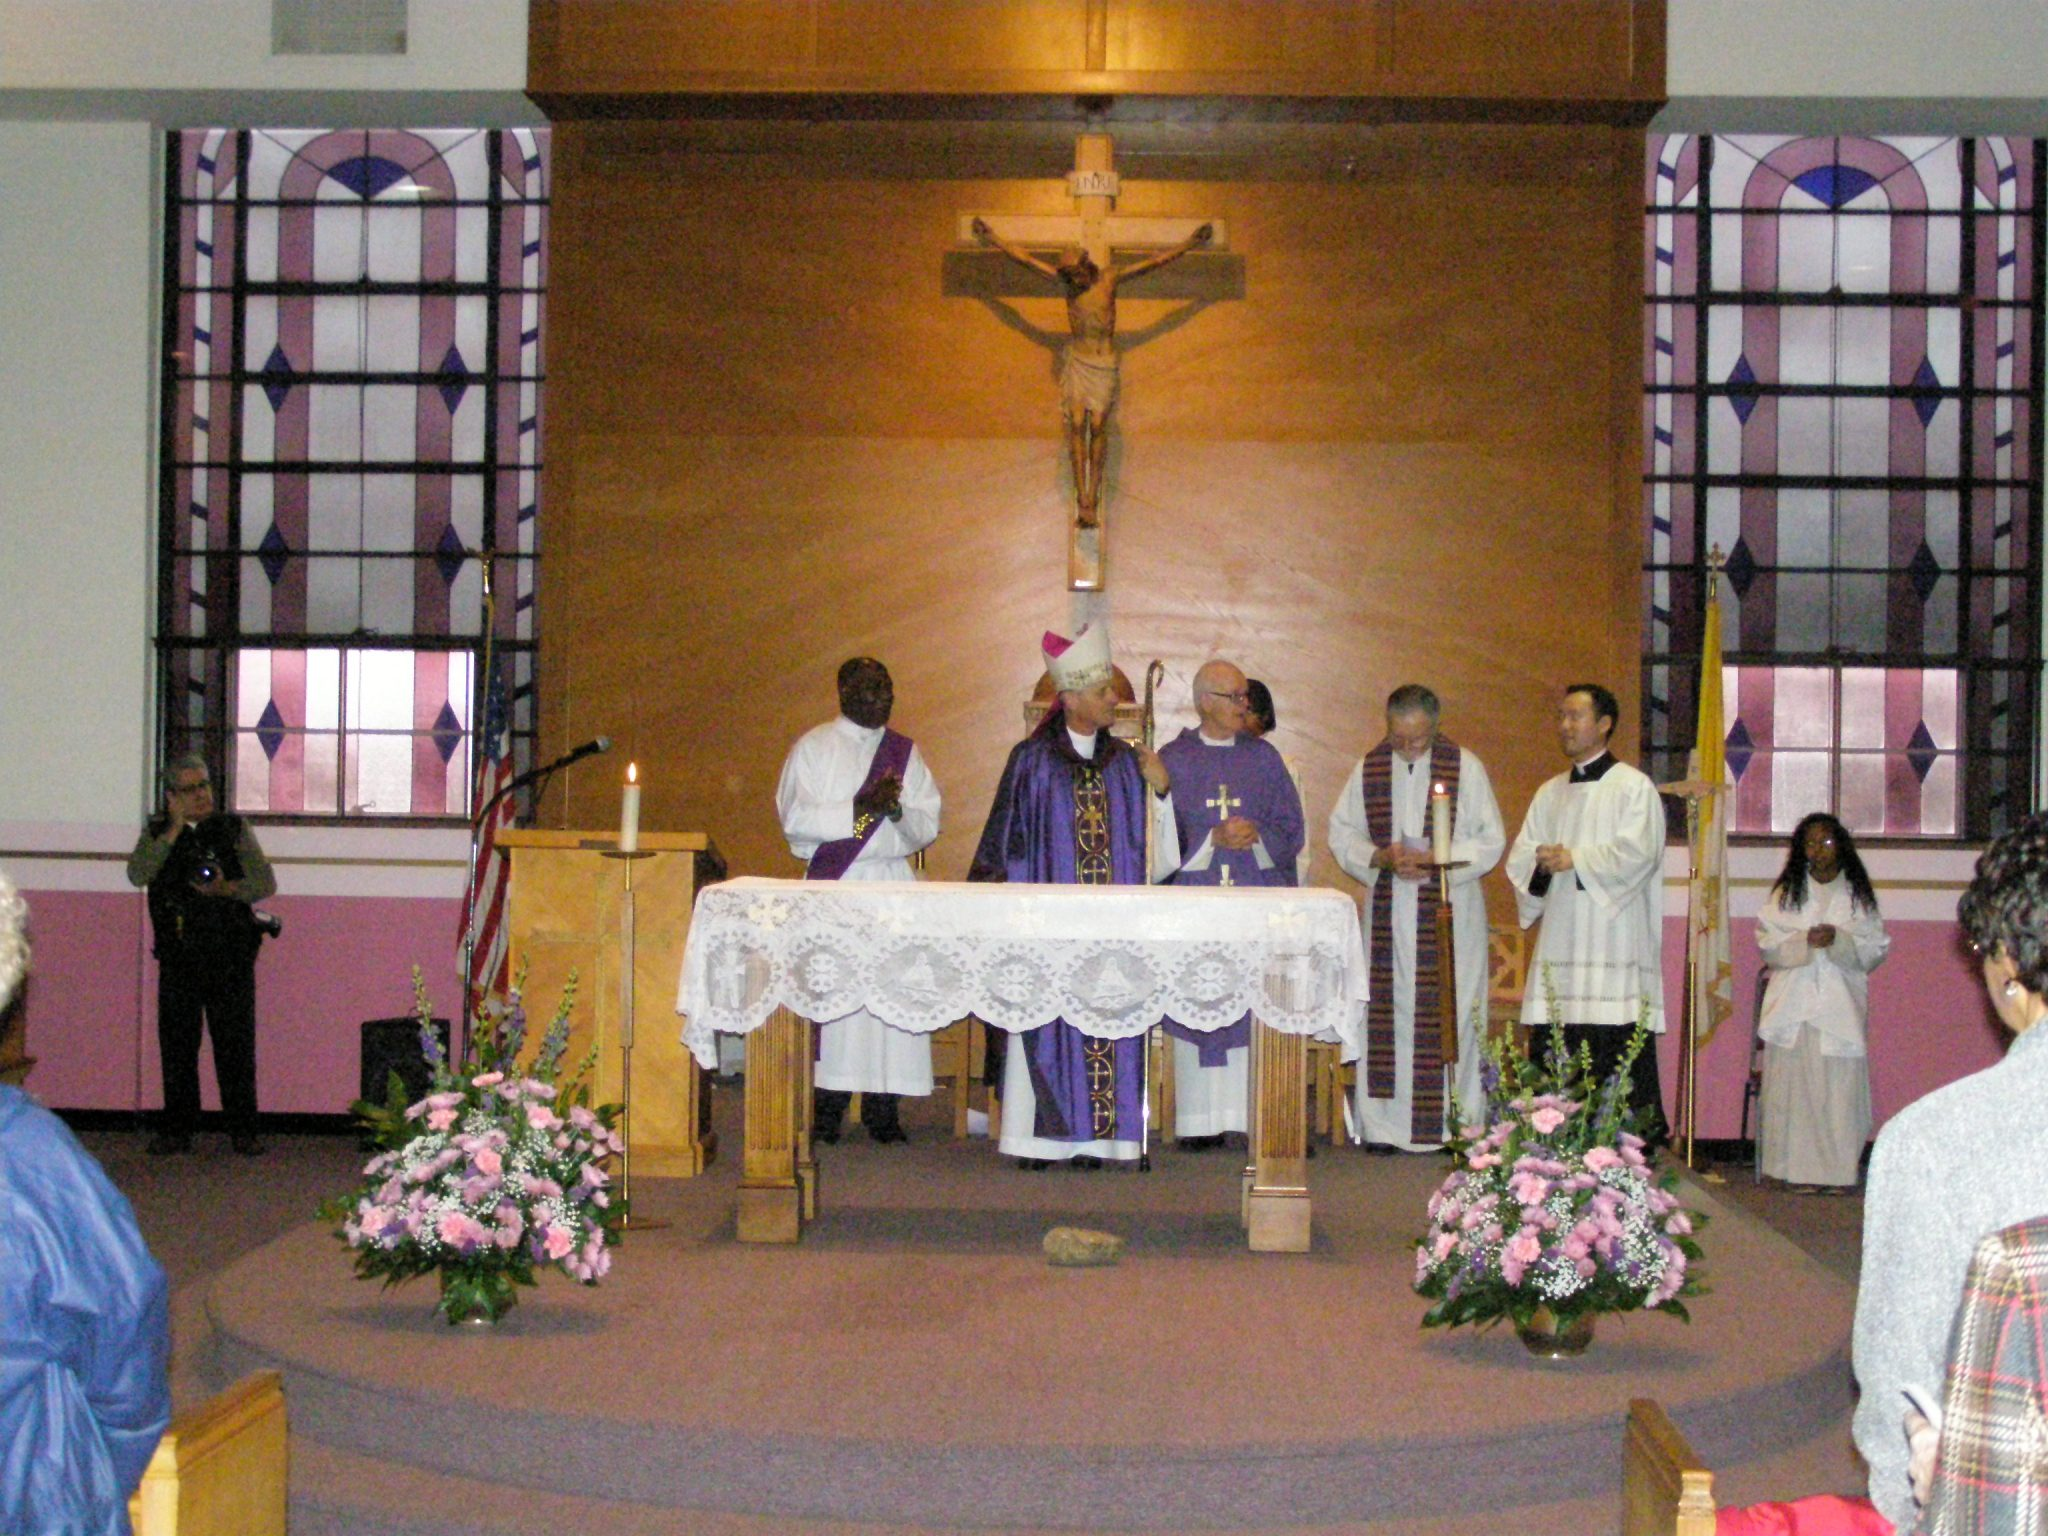 2010 Communion Brunch – PG County Units (St. Margaret of Scotland)